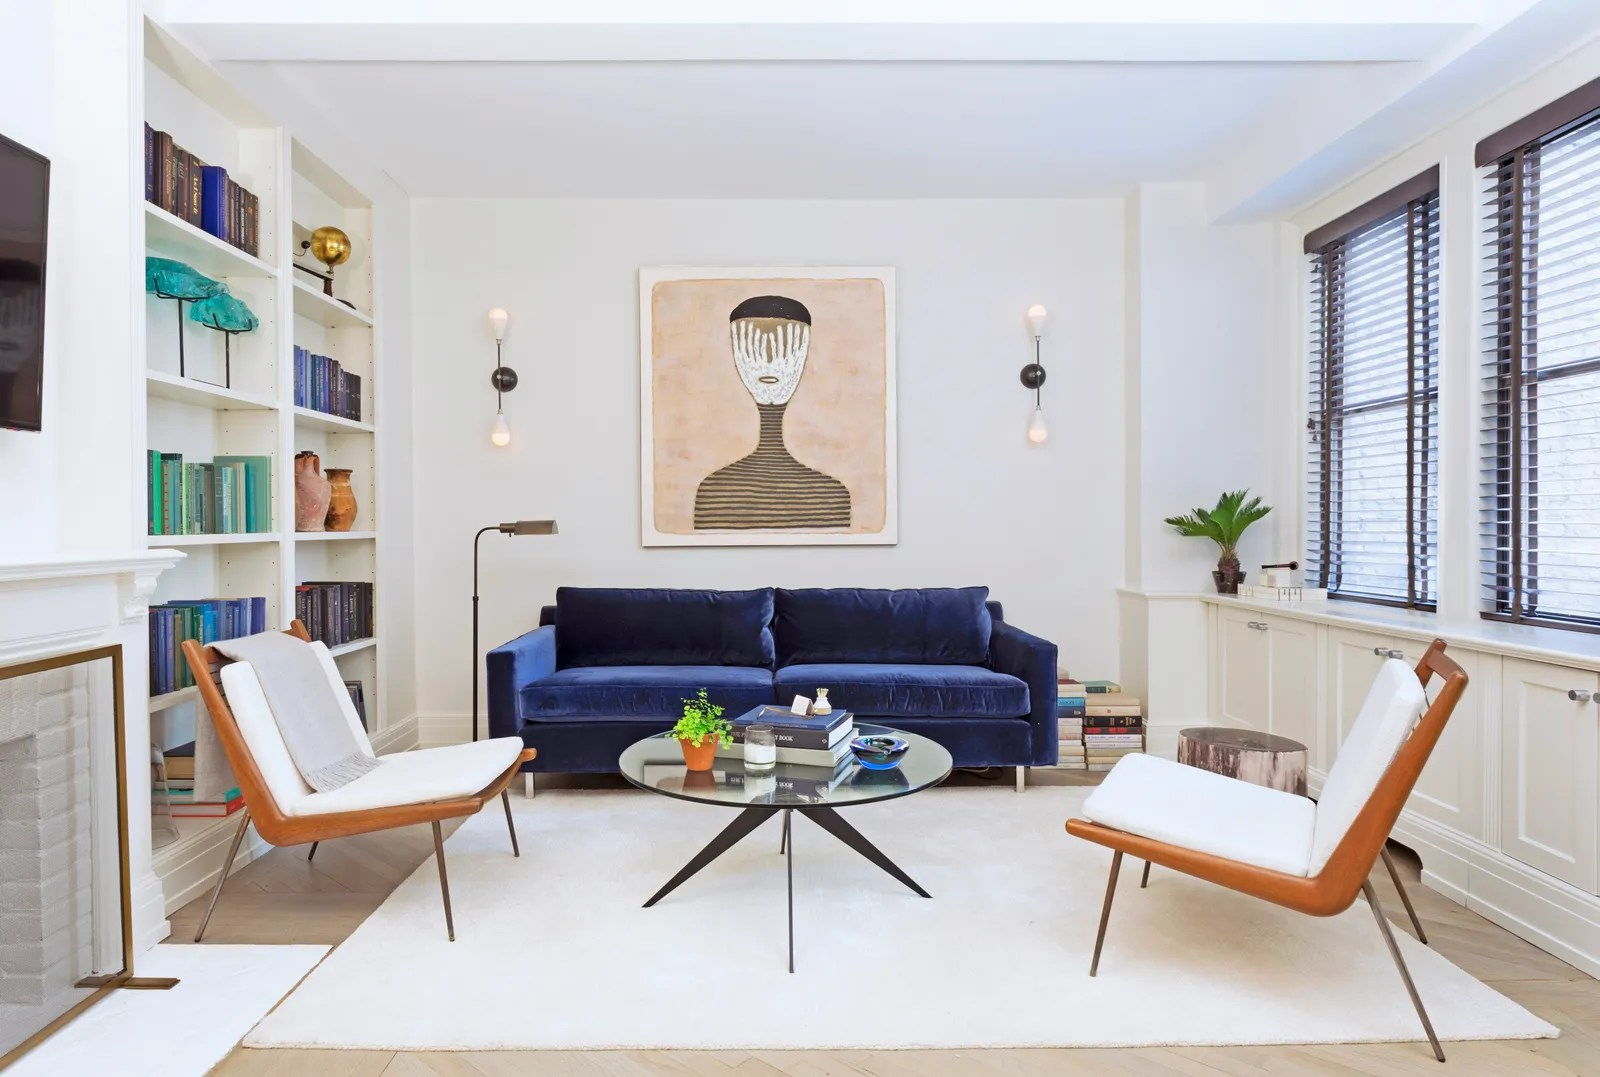 framed wall pictures for living room ireland pendant lighting 11 decor ideas small homes and apartments architectural jeremy globersons new york city apartment space by ashley darryl